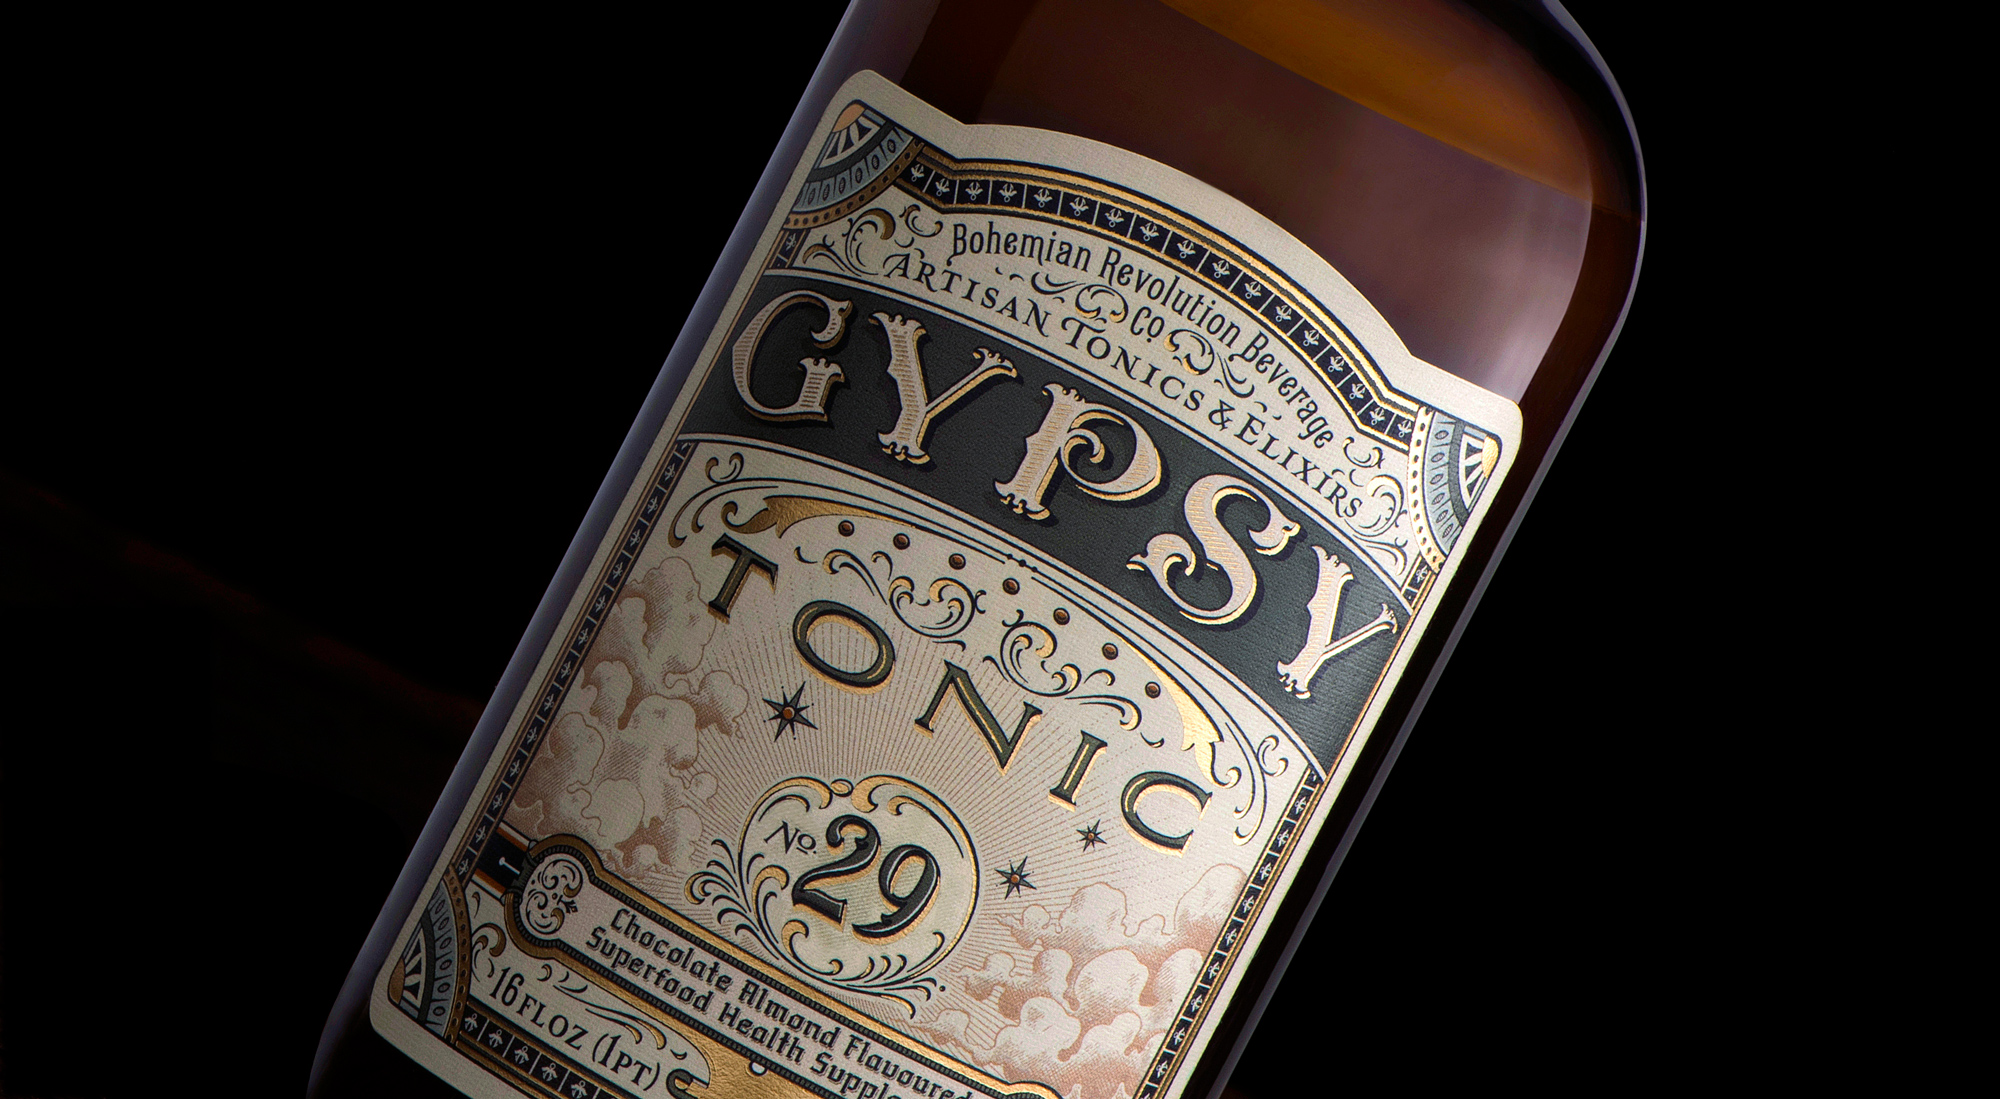 Gypsy Tonic_Close up label _1